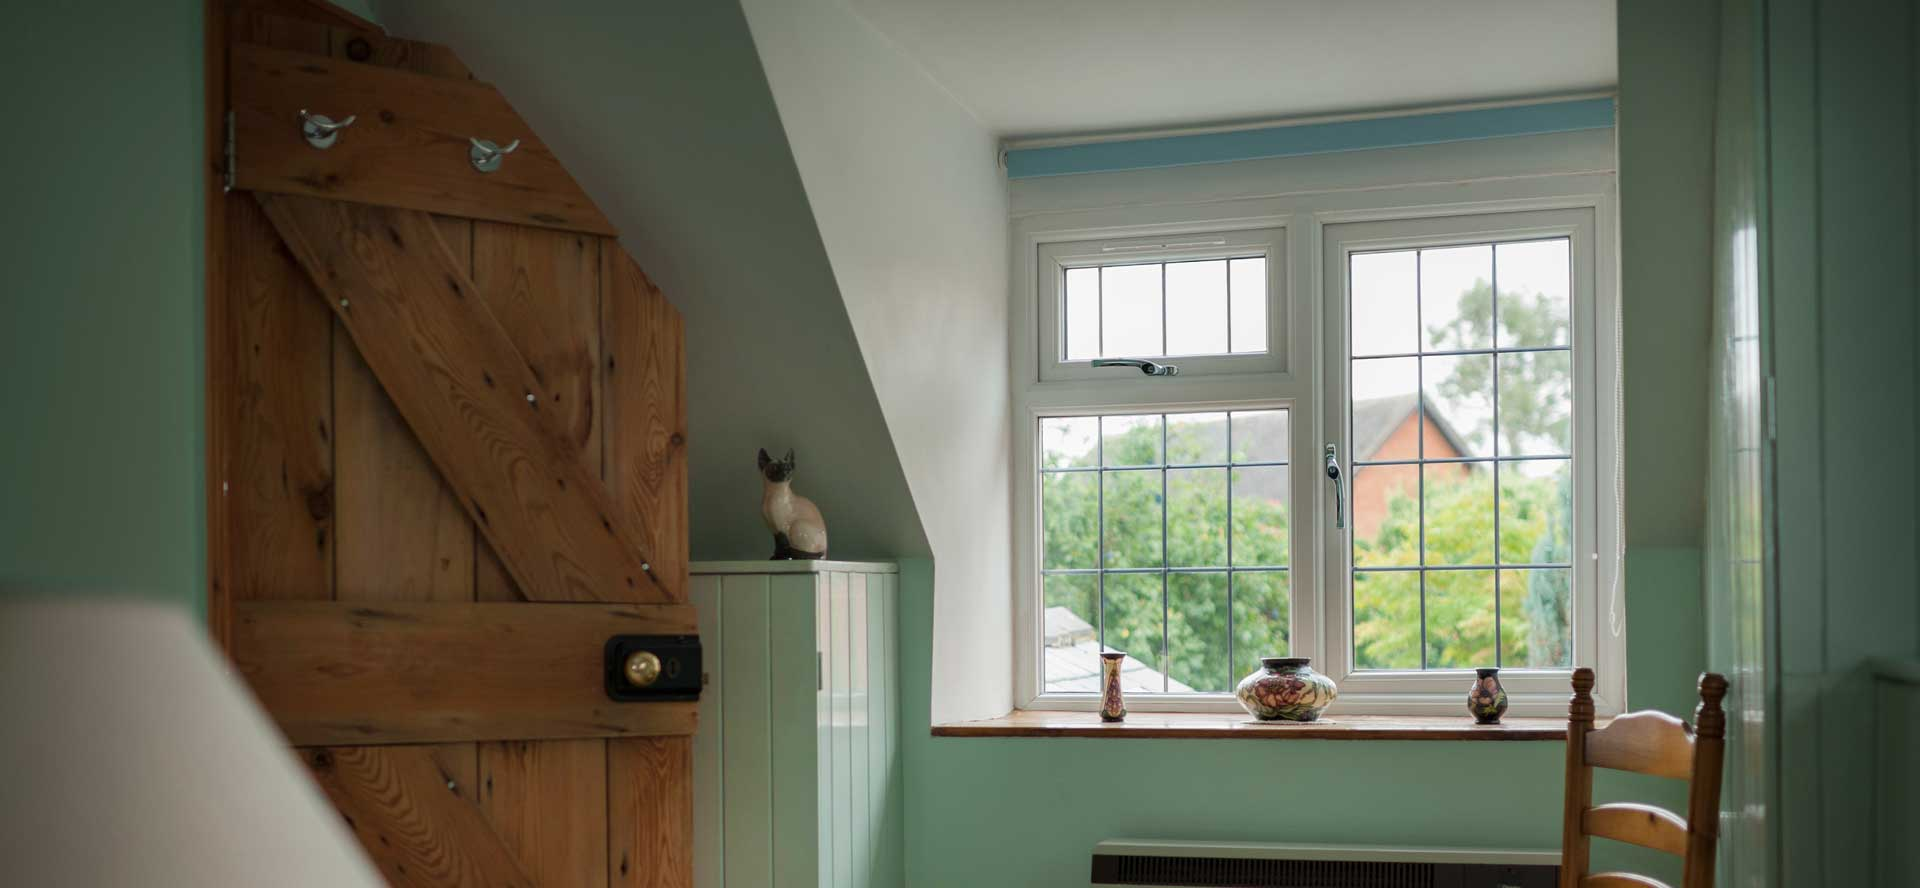 uPVC Casement Windows Colours